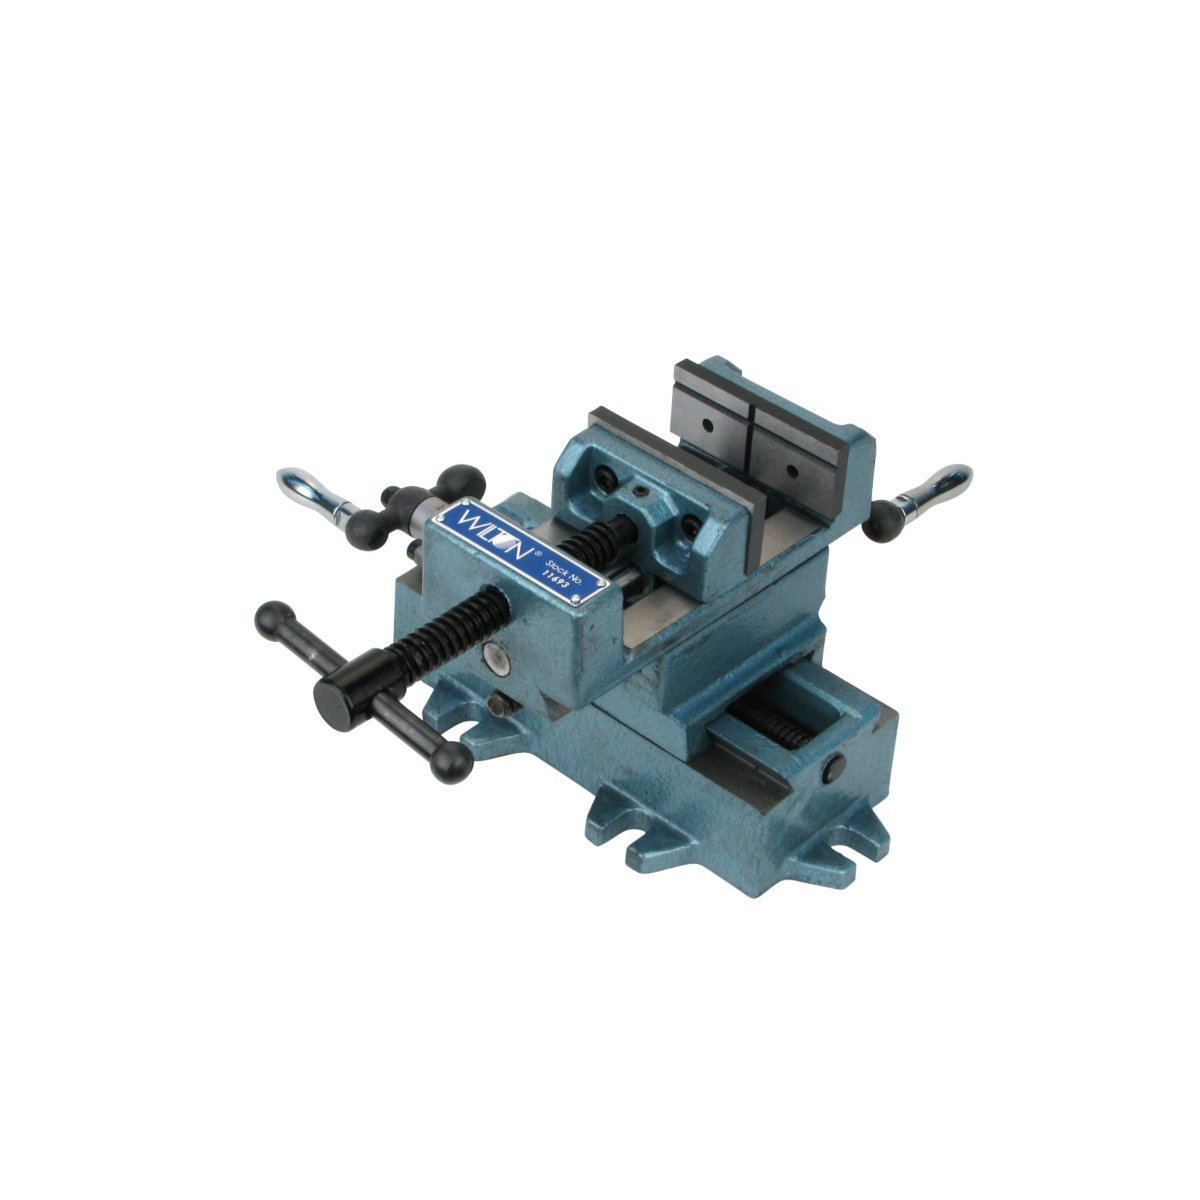 Wilton 11694 4-Inch Cross Slide Drill Press Vise by Wilton